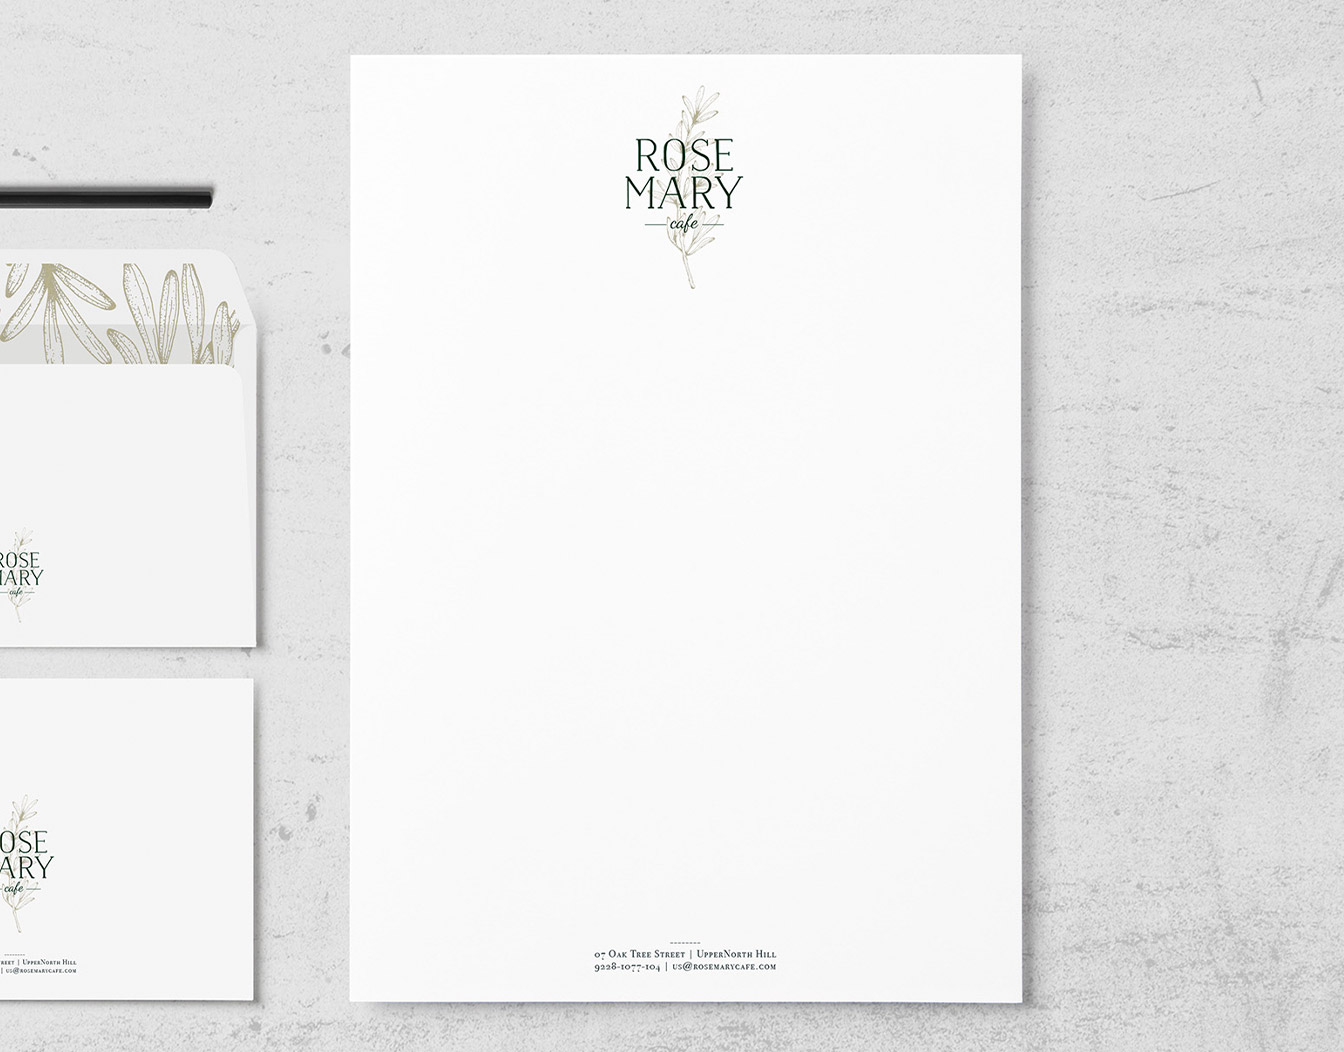 White letterhead with two envelopes